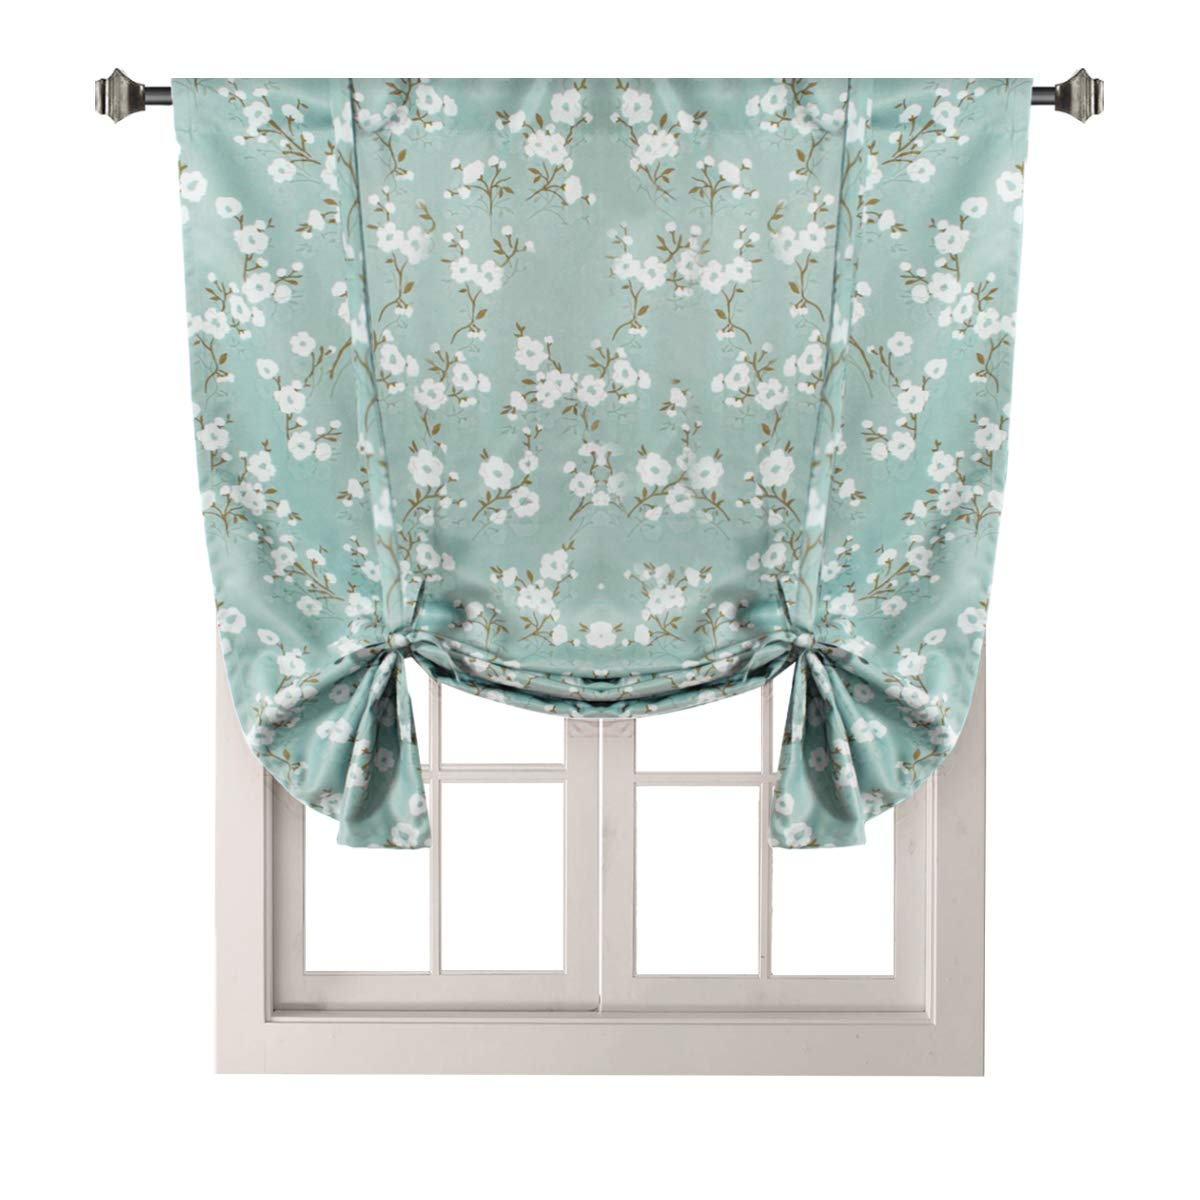 H.VERSAILTEX Traditional Window Drapes Aqua Floral Country Style Pattern Thermal Insulated Blackout Curtain for Living Room Rod Pocket Tie Up Shade Window Treatment Panel, W42 x L63 Inch